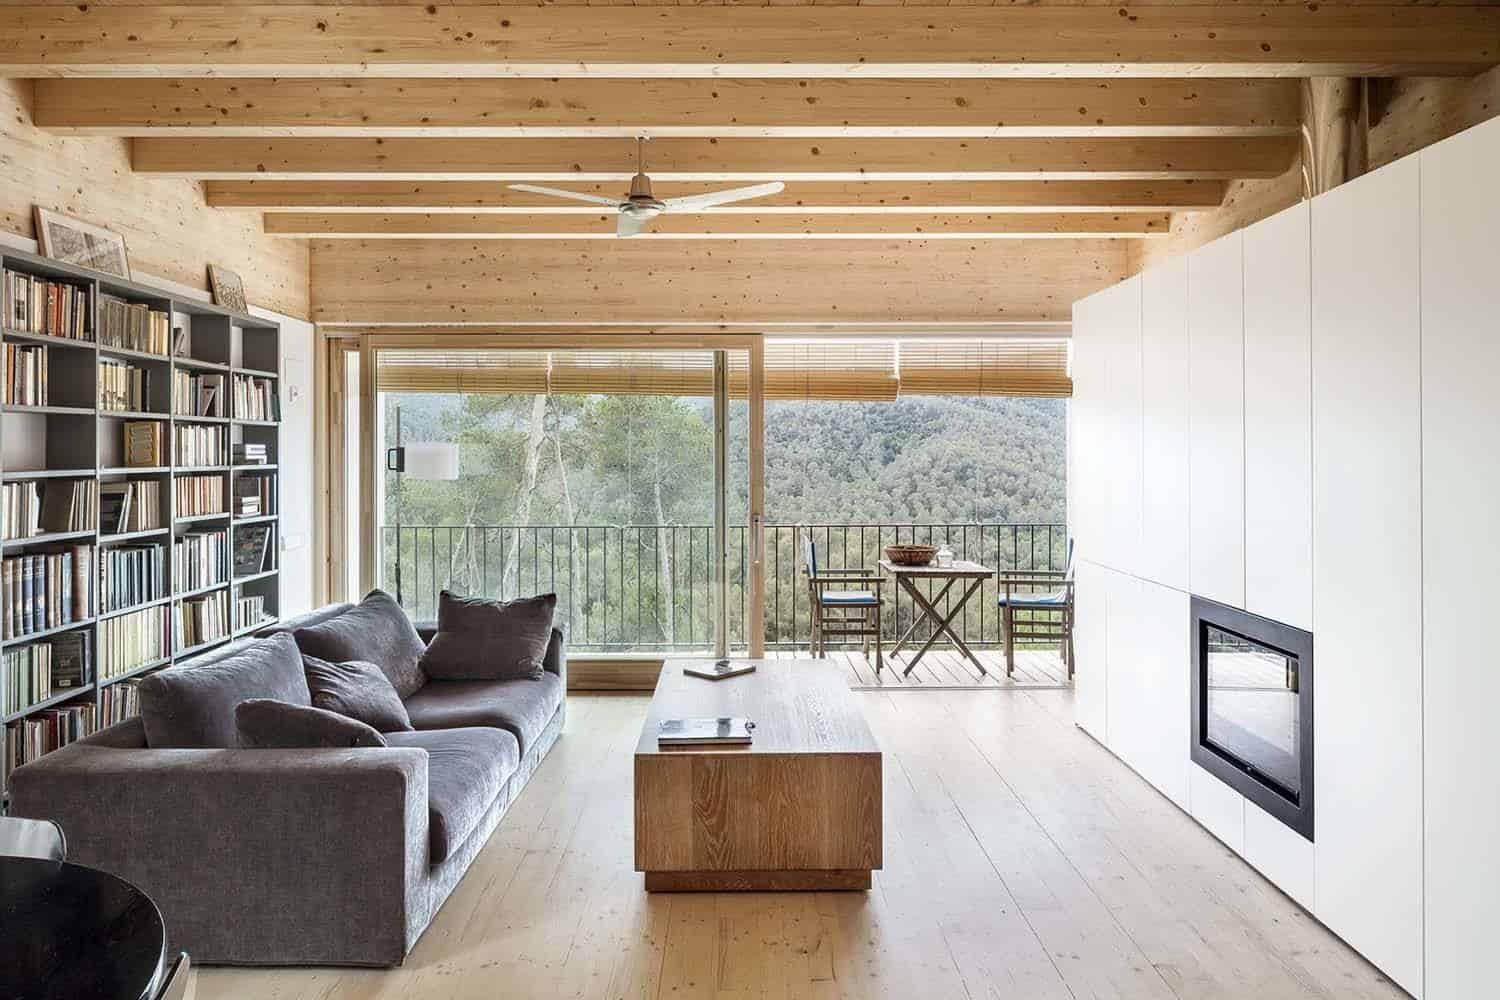 Prefabricated Home Design-Alventosa Morell Arquitectes-11-1 Kindesign